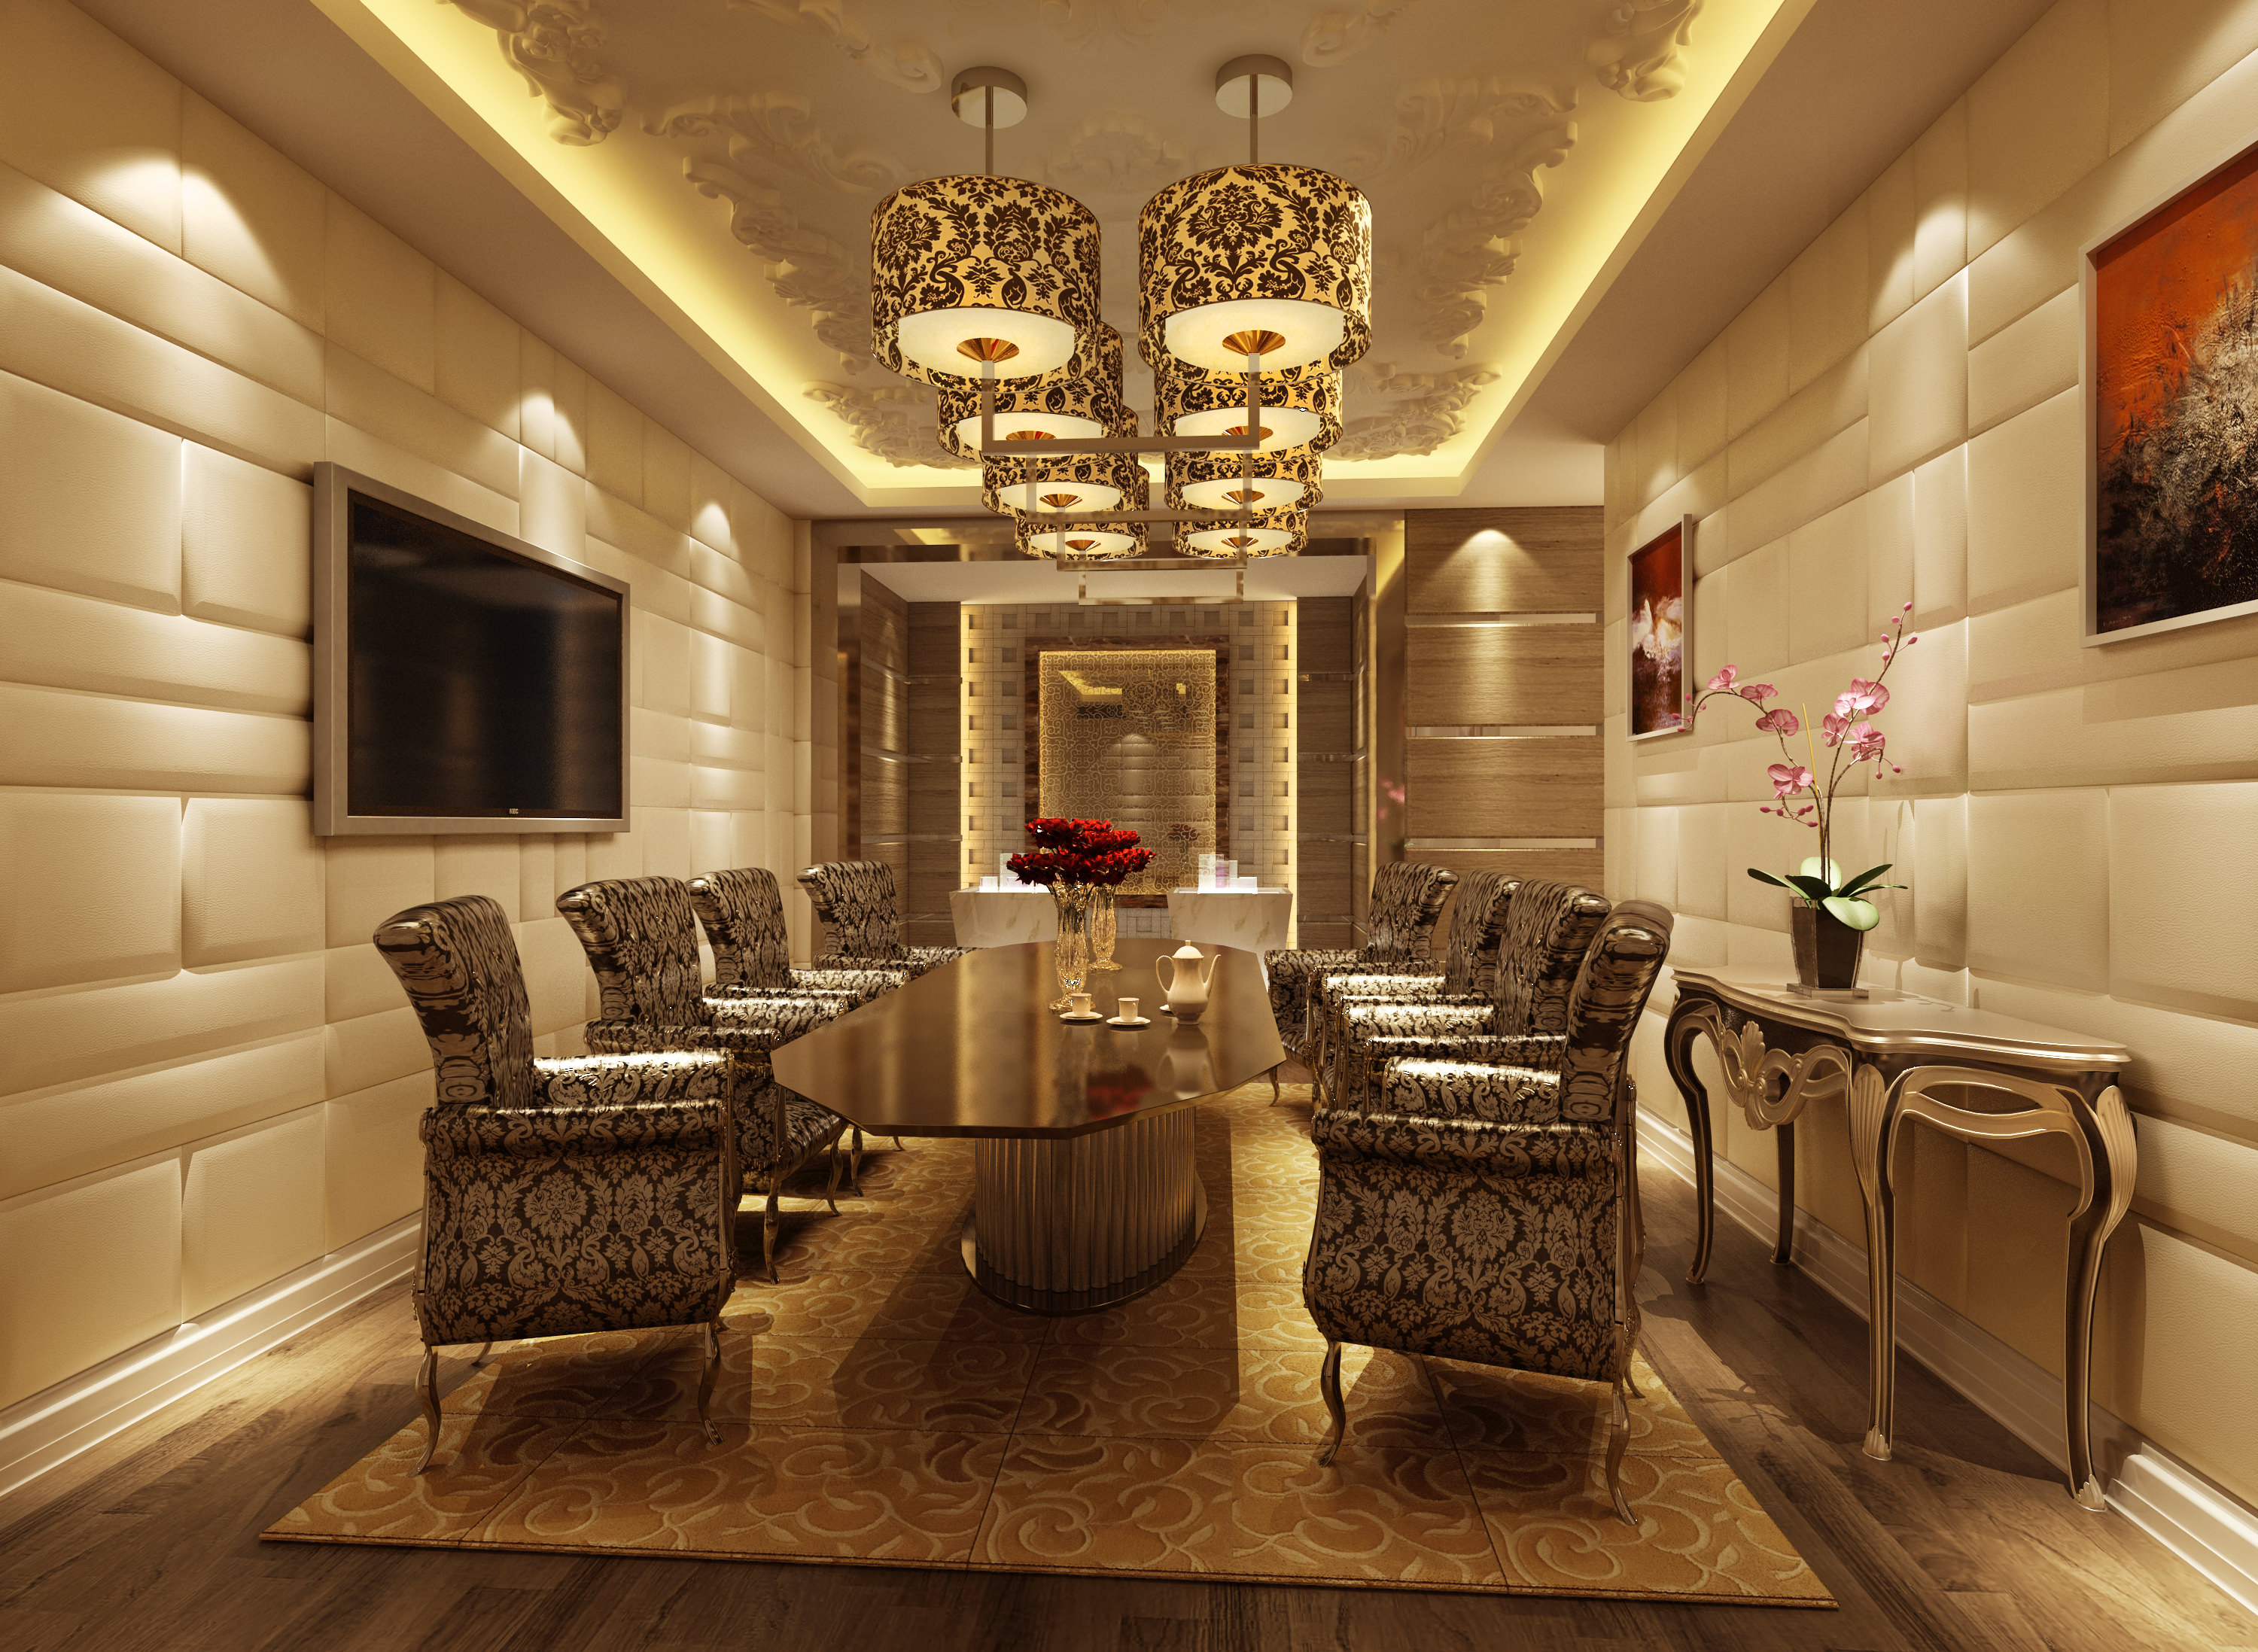 Luxury conference room 3d model max for Room 3d model